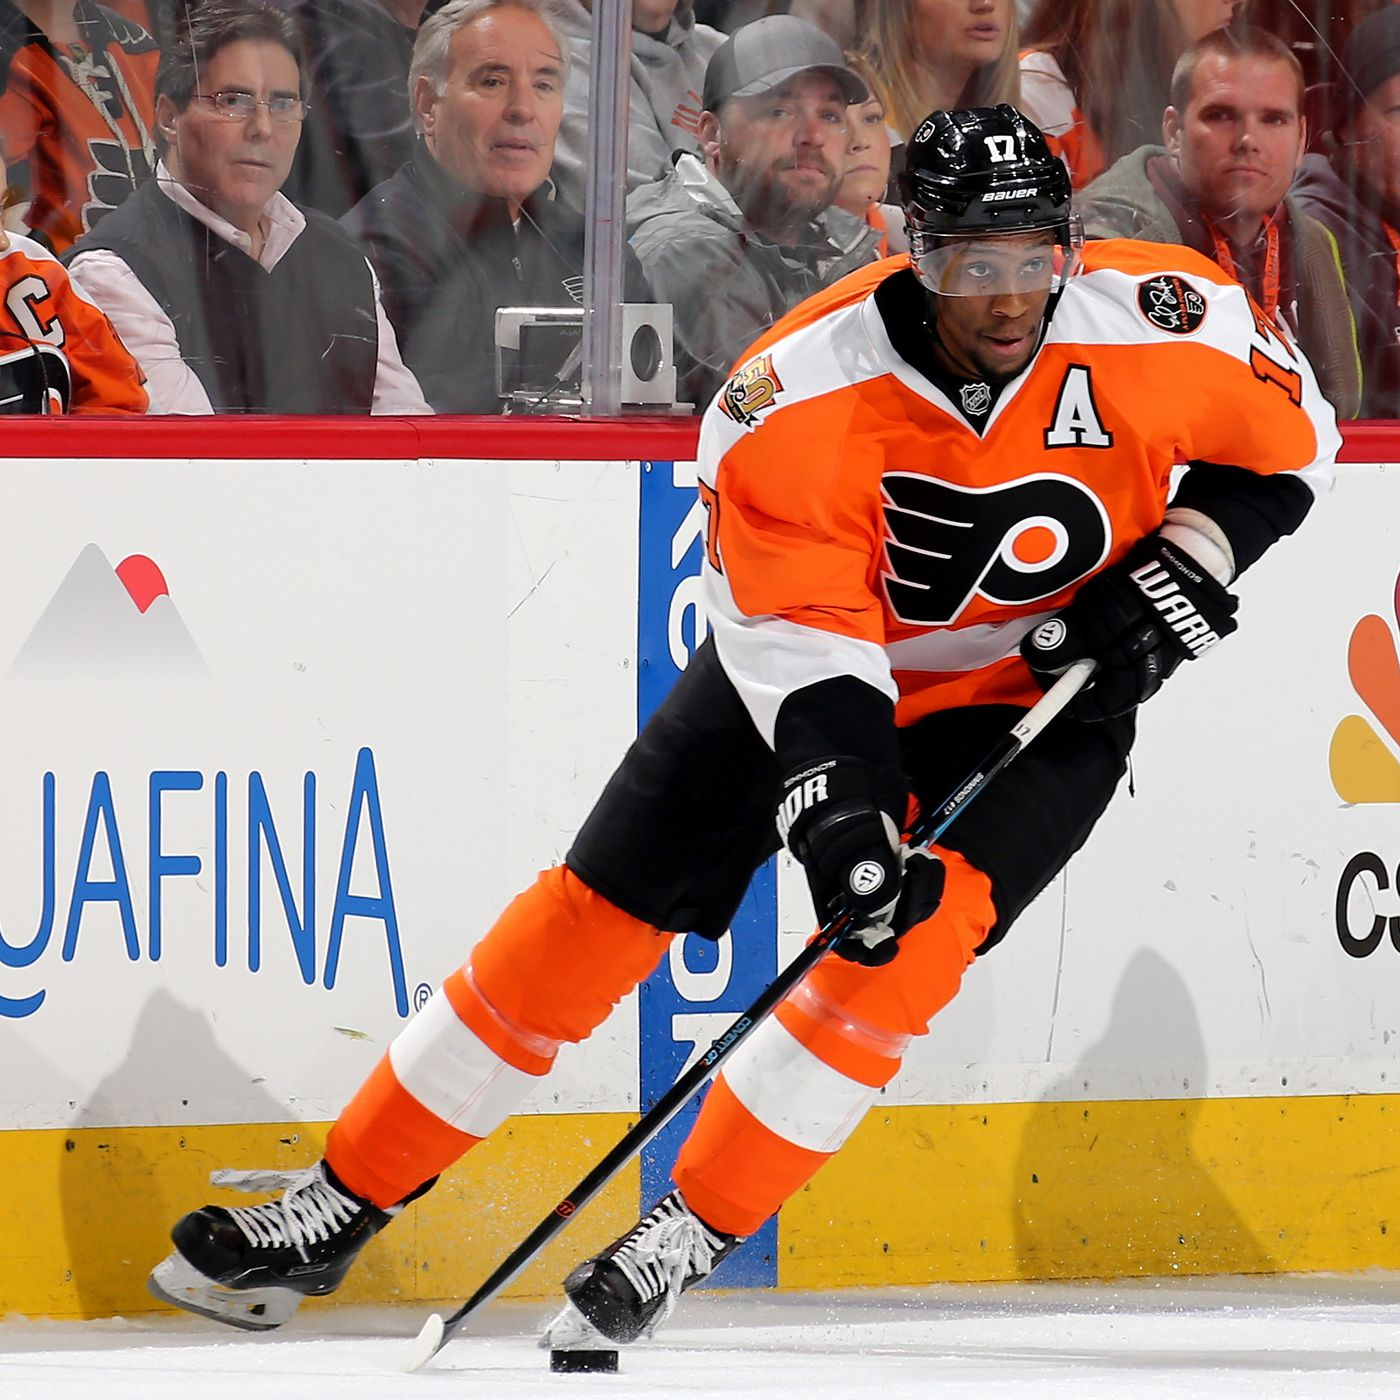 Nhl All Star Skills Competition Rosters Wayne Simmonds To Participate In 3 Events For Metro Team Broad Street Hockey